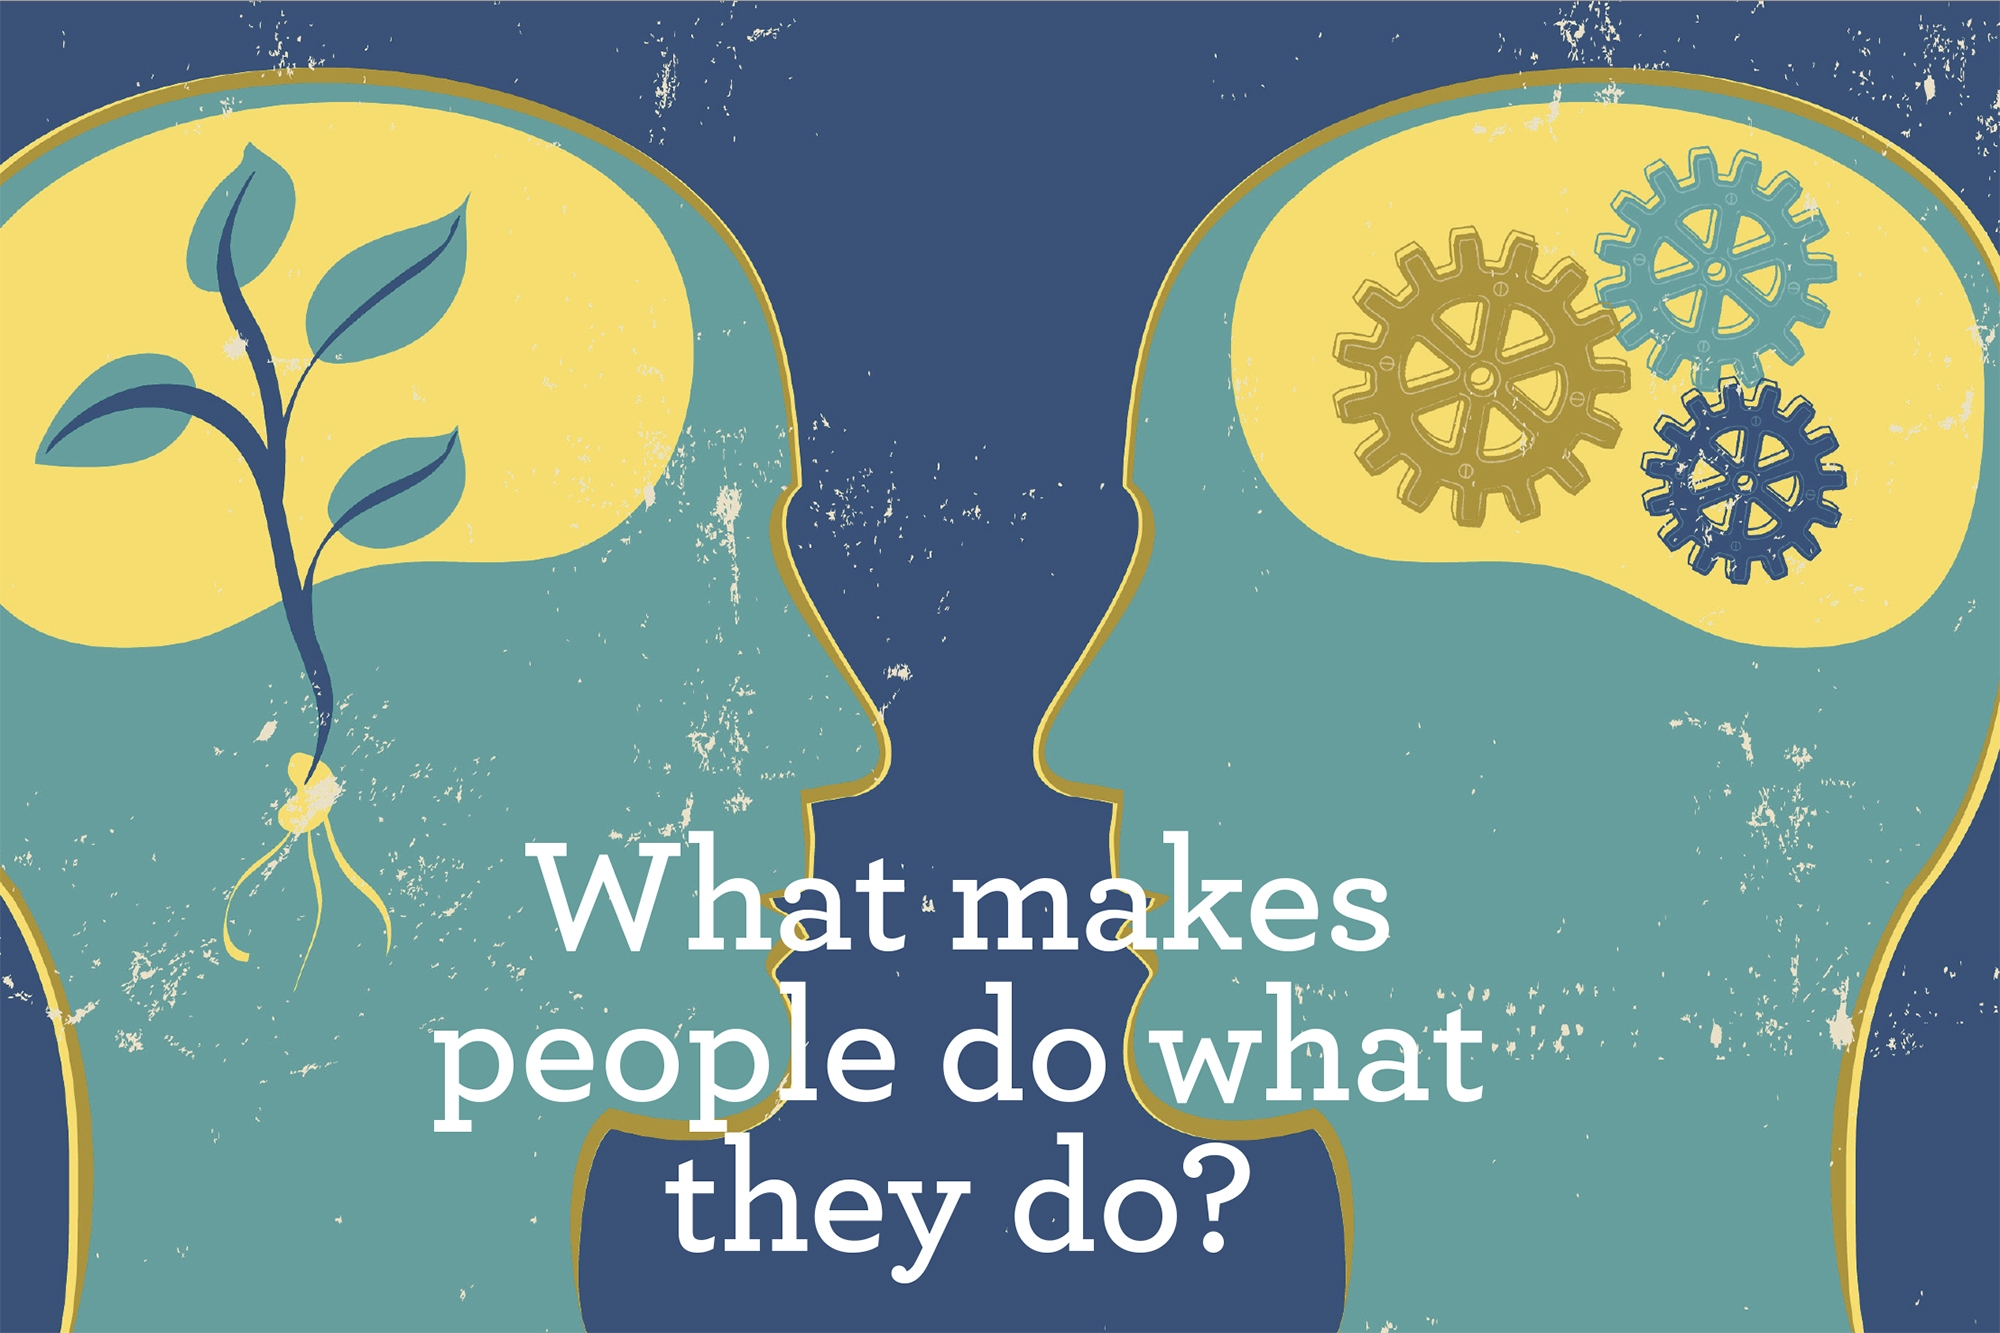 What makes people do what they do?